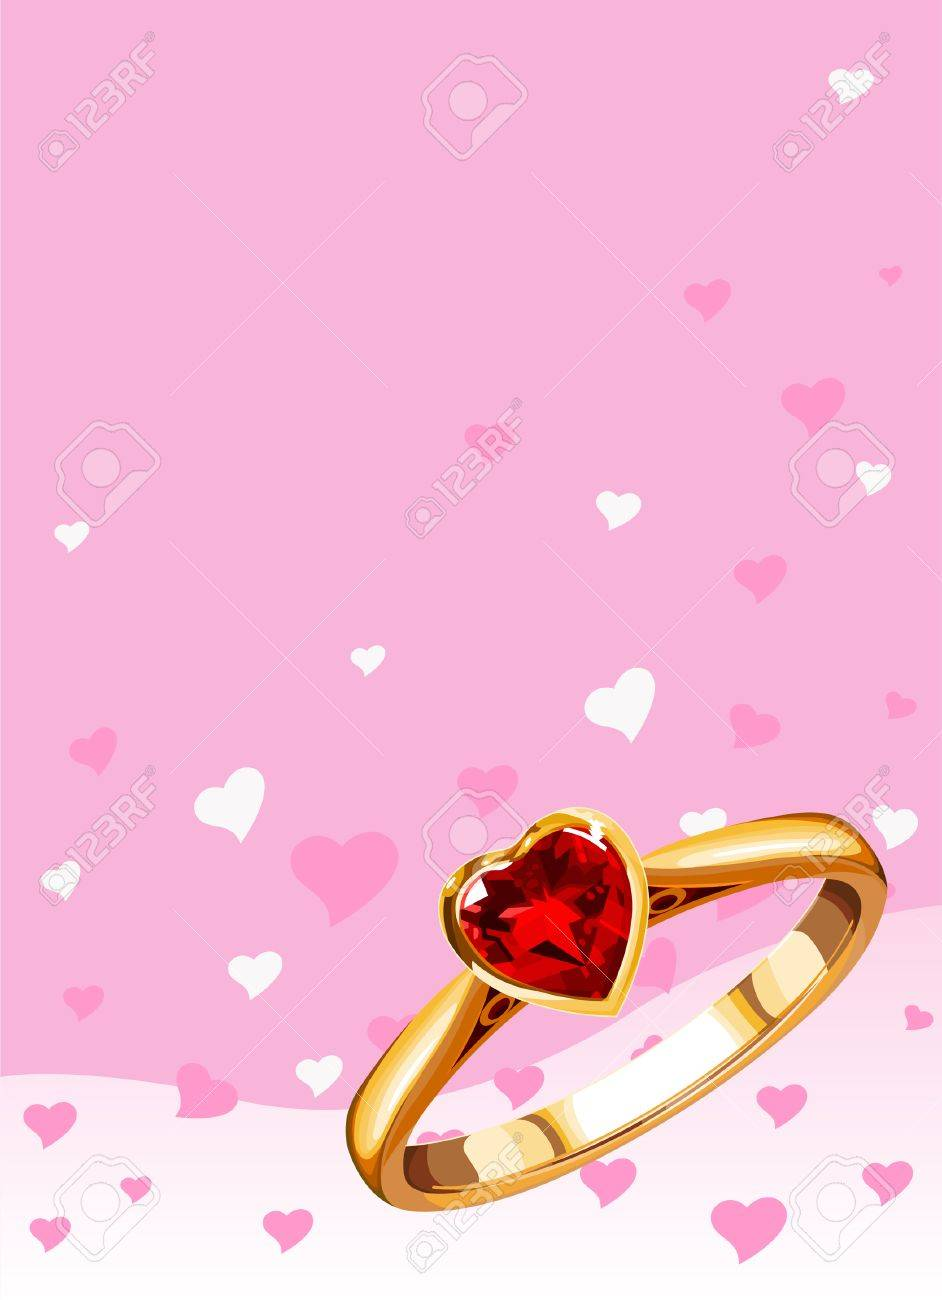 Wedding Ring On A Pink Background Royalty Free Cliparts, Vectors ...